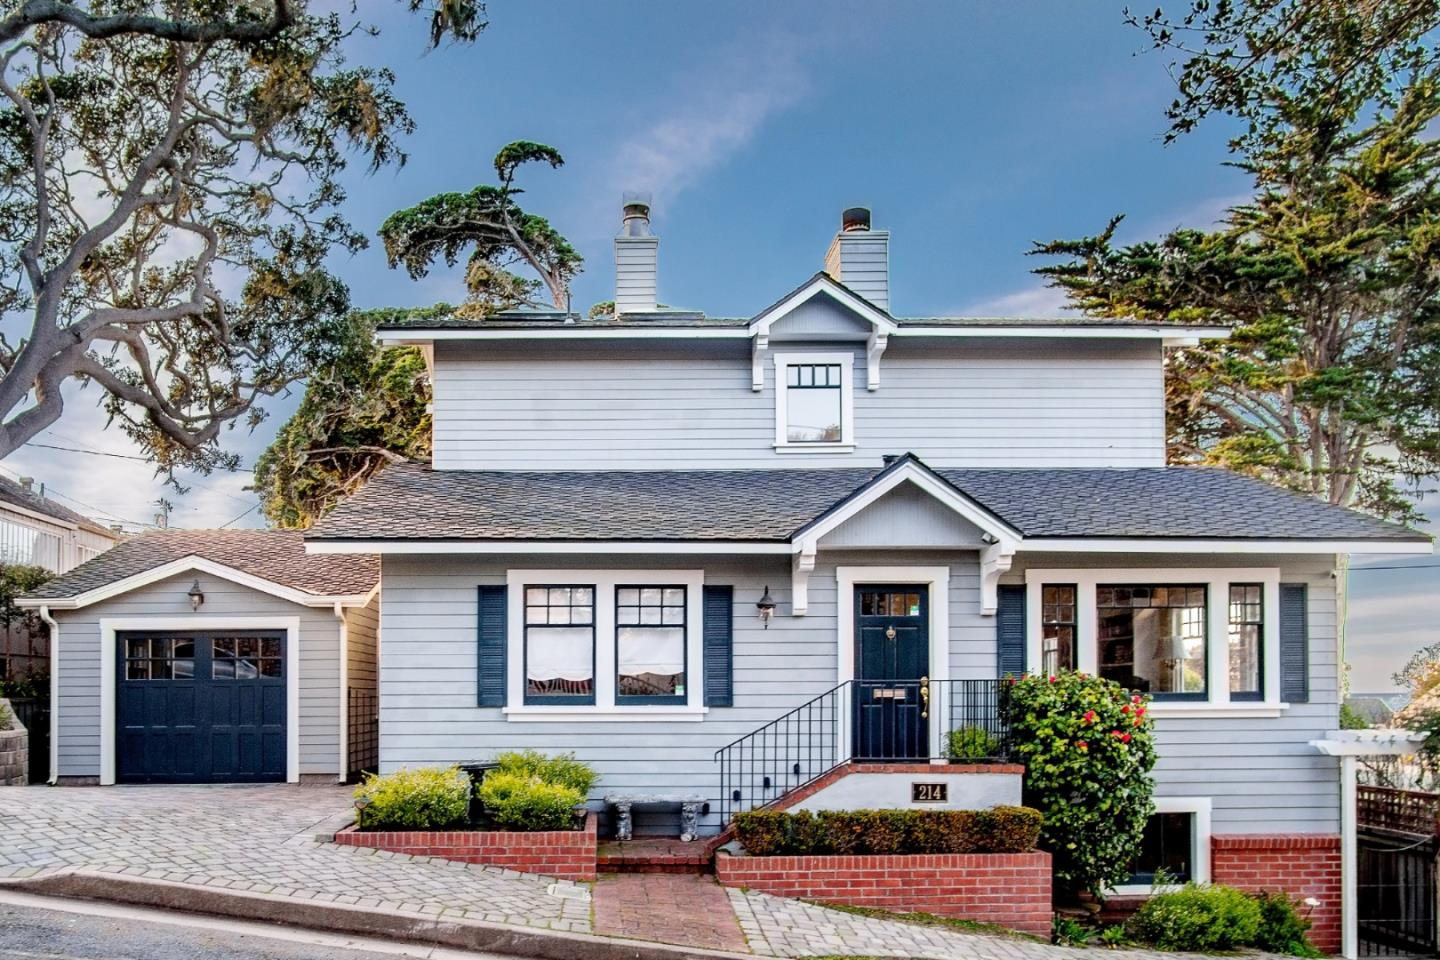 Property for sale at 214 3rd ST, Pacific Grove,  California 93950